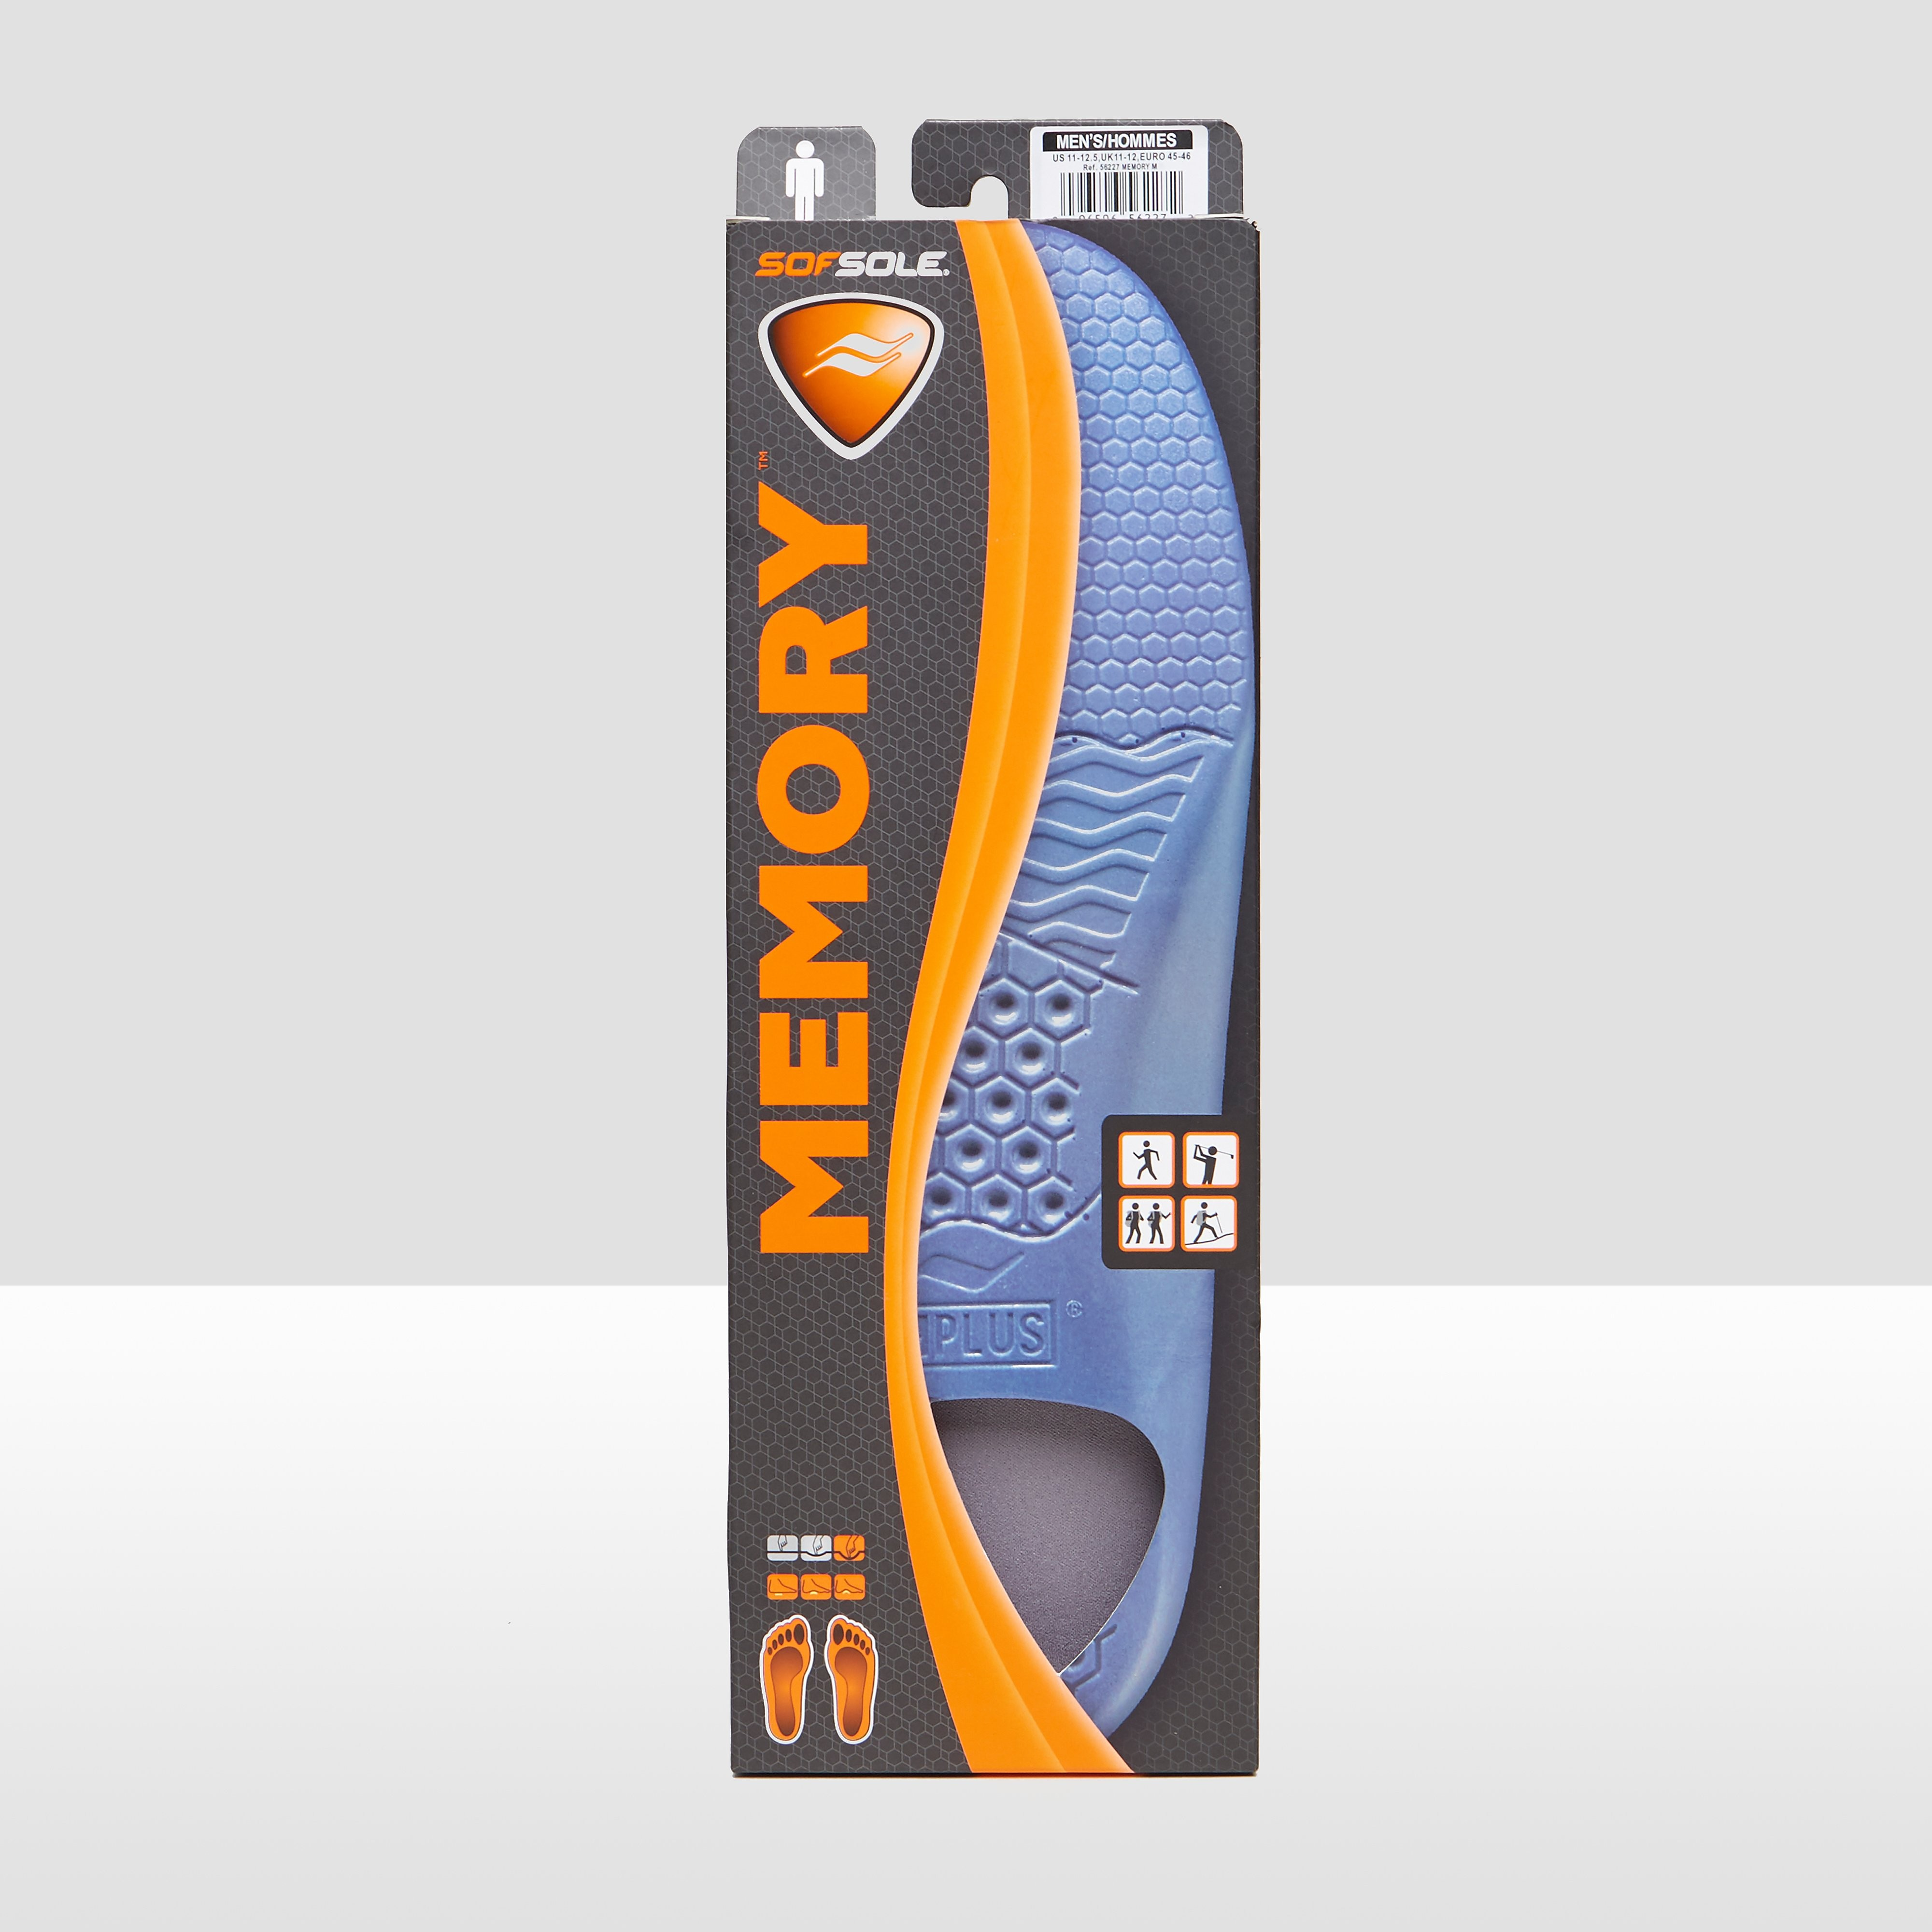 SOFSOLE MEMORY INSOLE HEREN